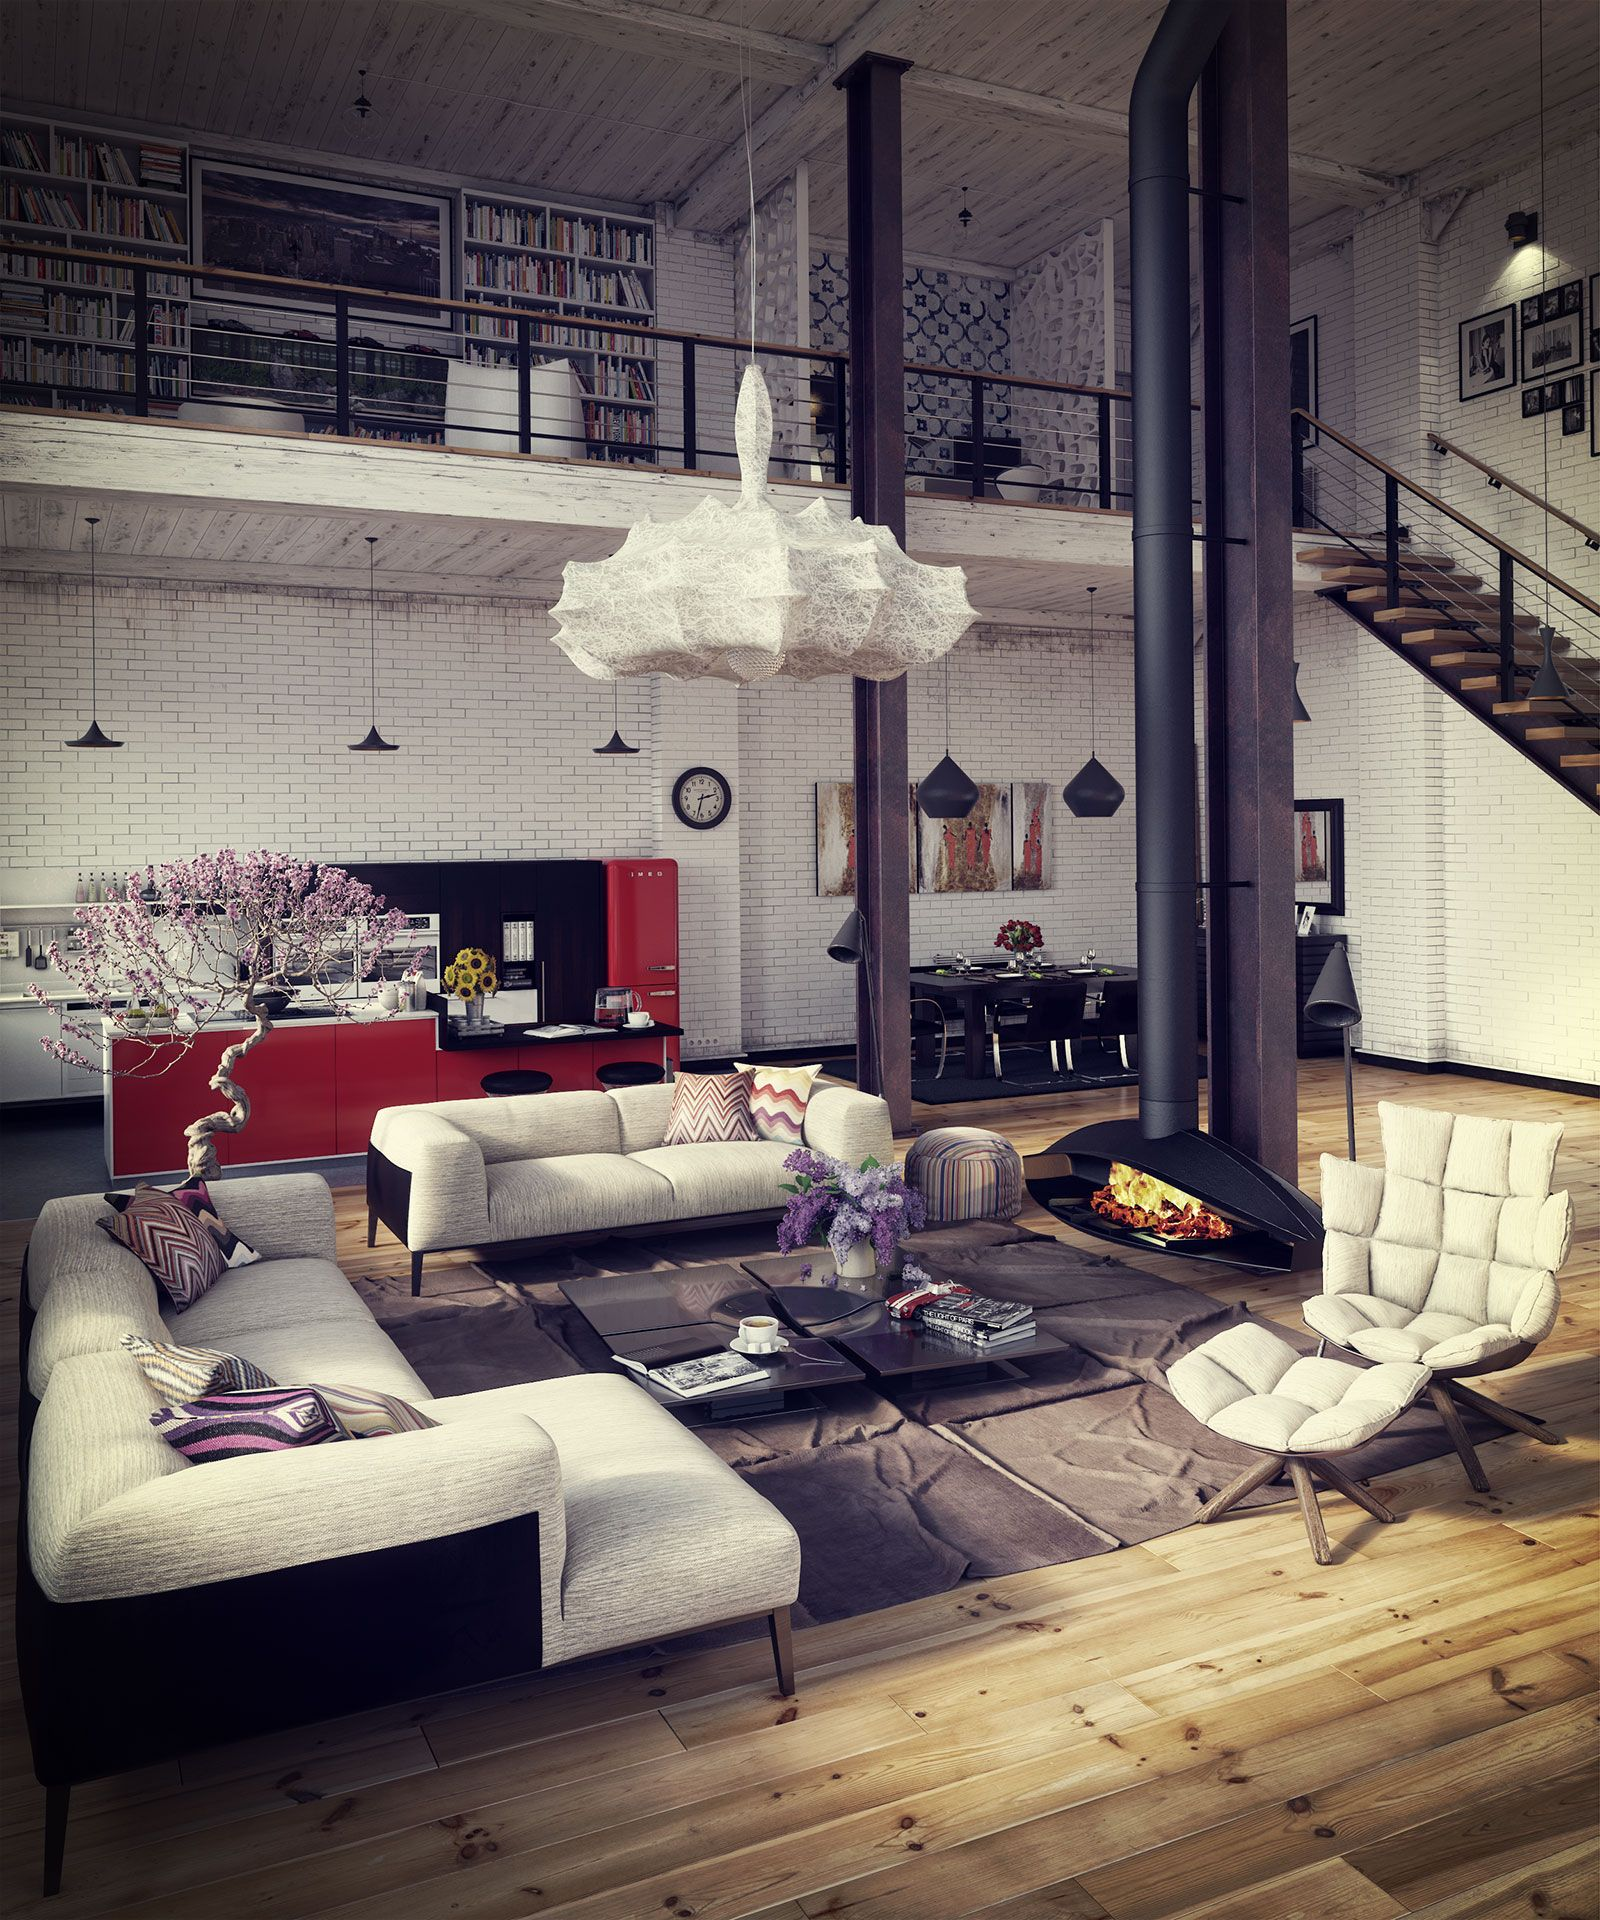 Modern Loft Living Spaces Blending Organic Design and Industrial ...